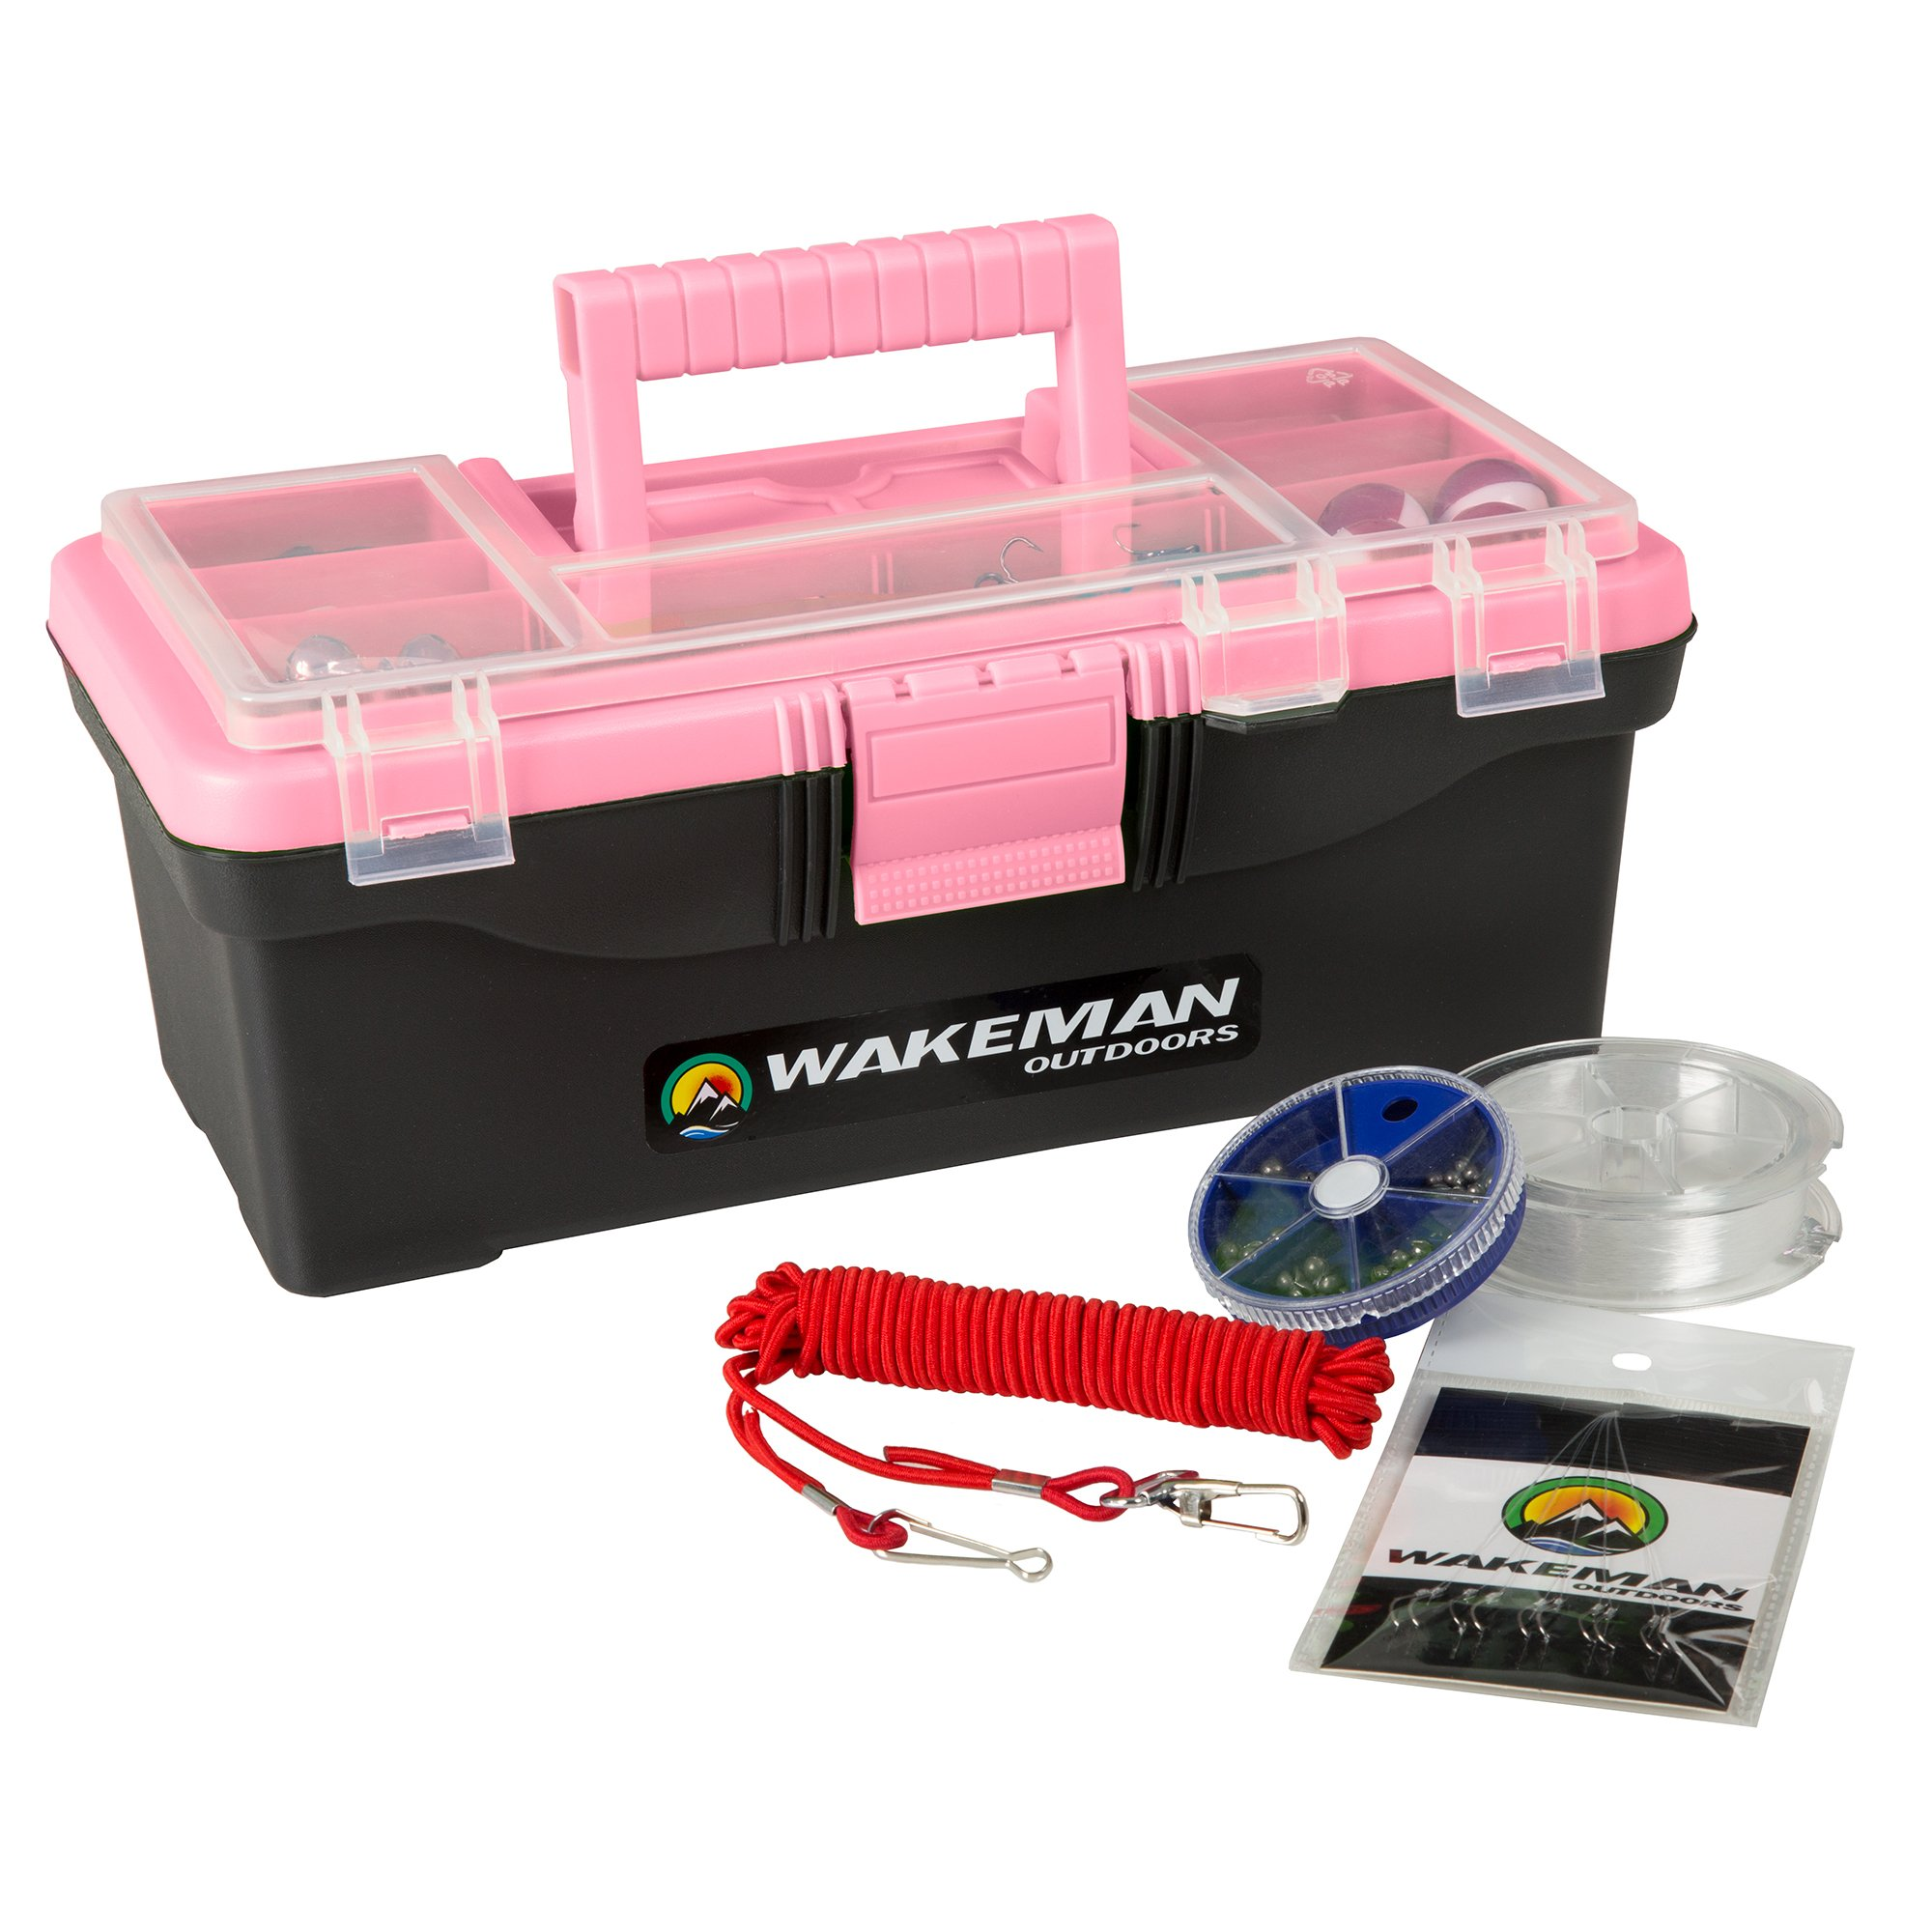 Wakeman Fishing Single Tray Tackle Box- 55 Piece Tackle Gear Kit Includes Sinkers, Hooks Lures Bobbers Swivels and Fishing Line Outdoors (Pink) by Wakeman